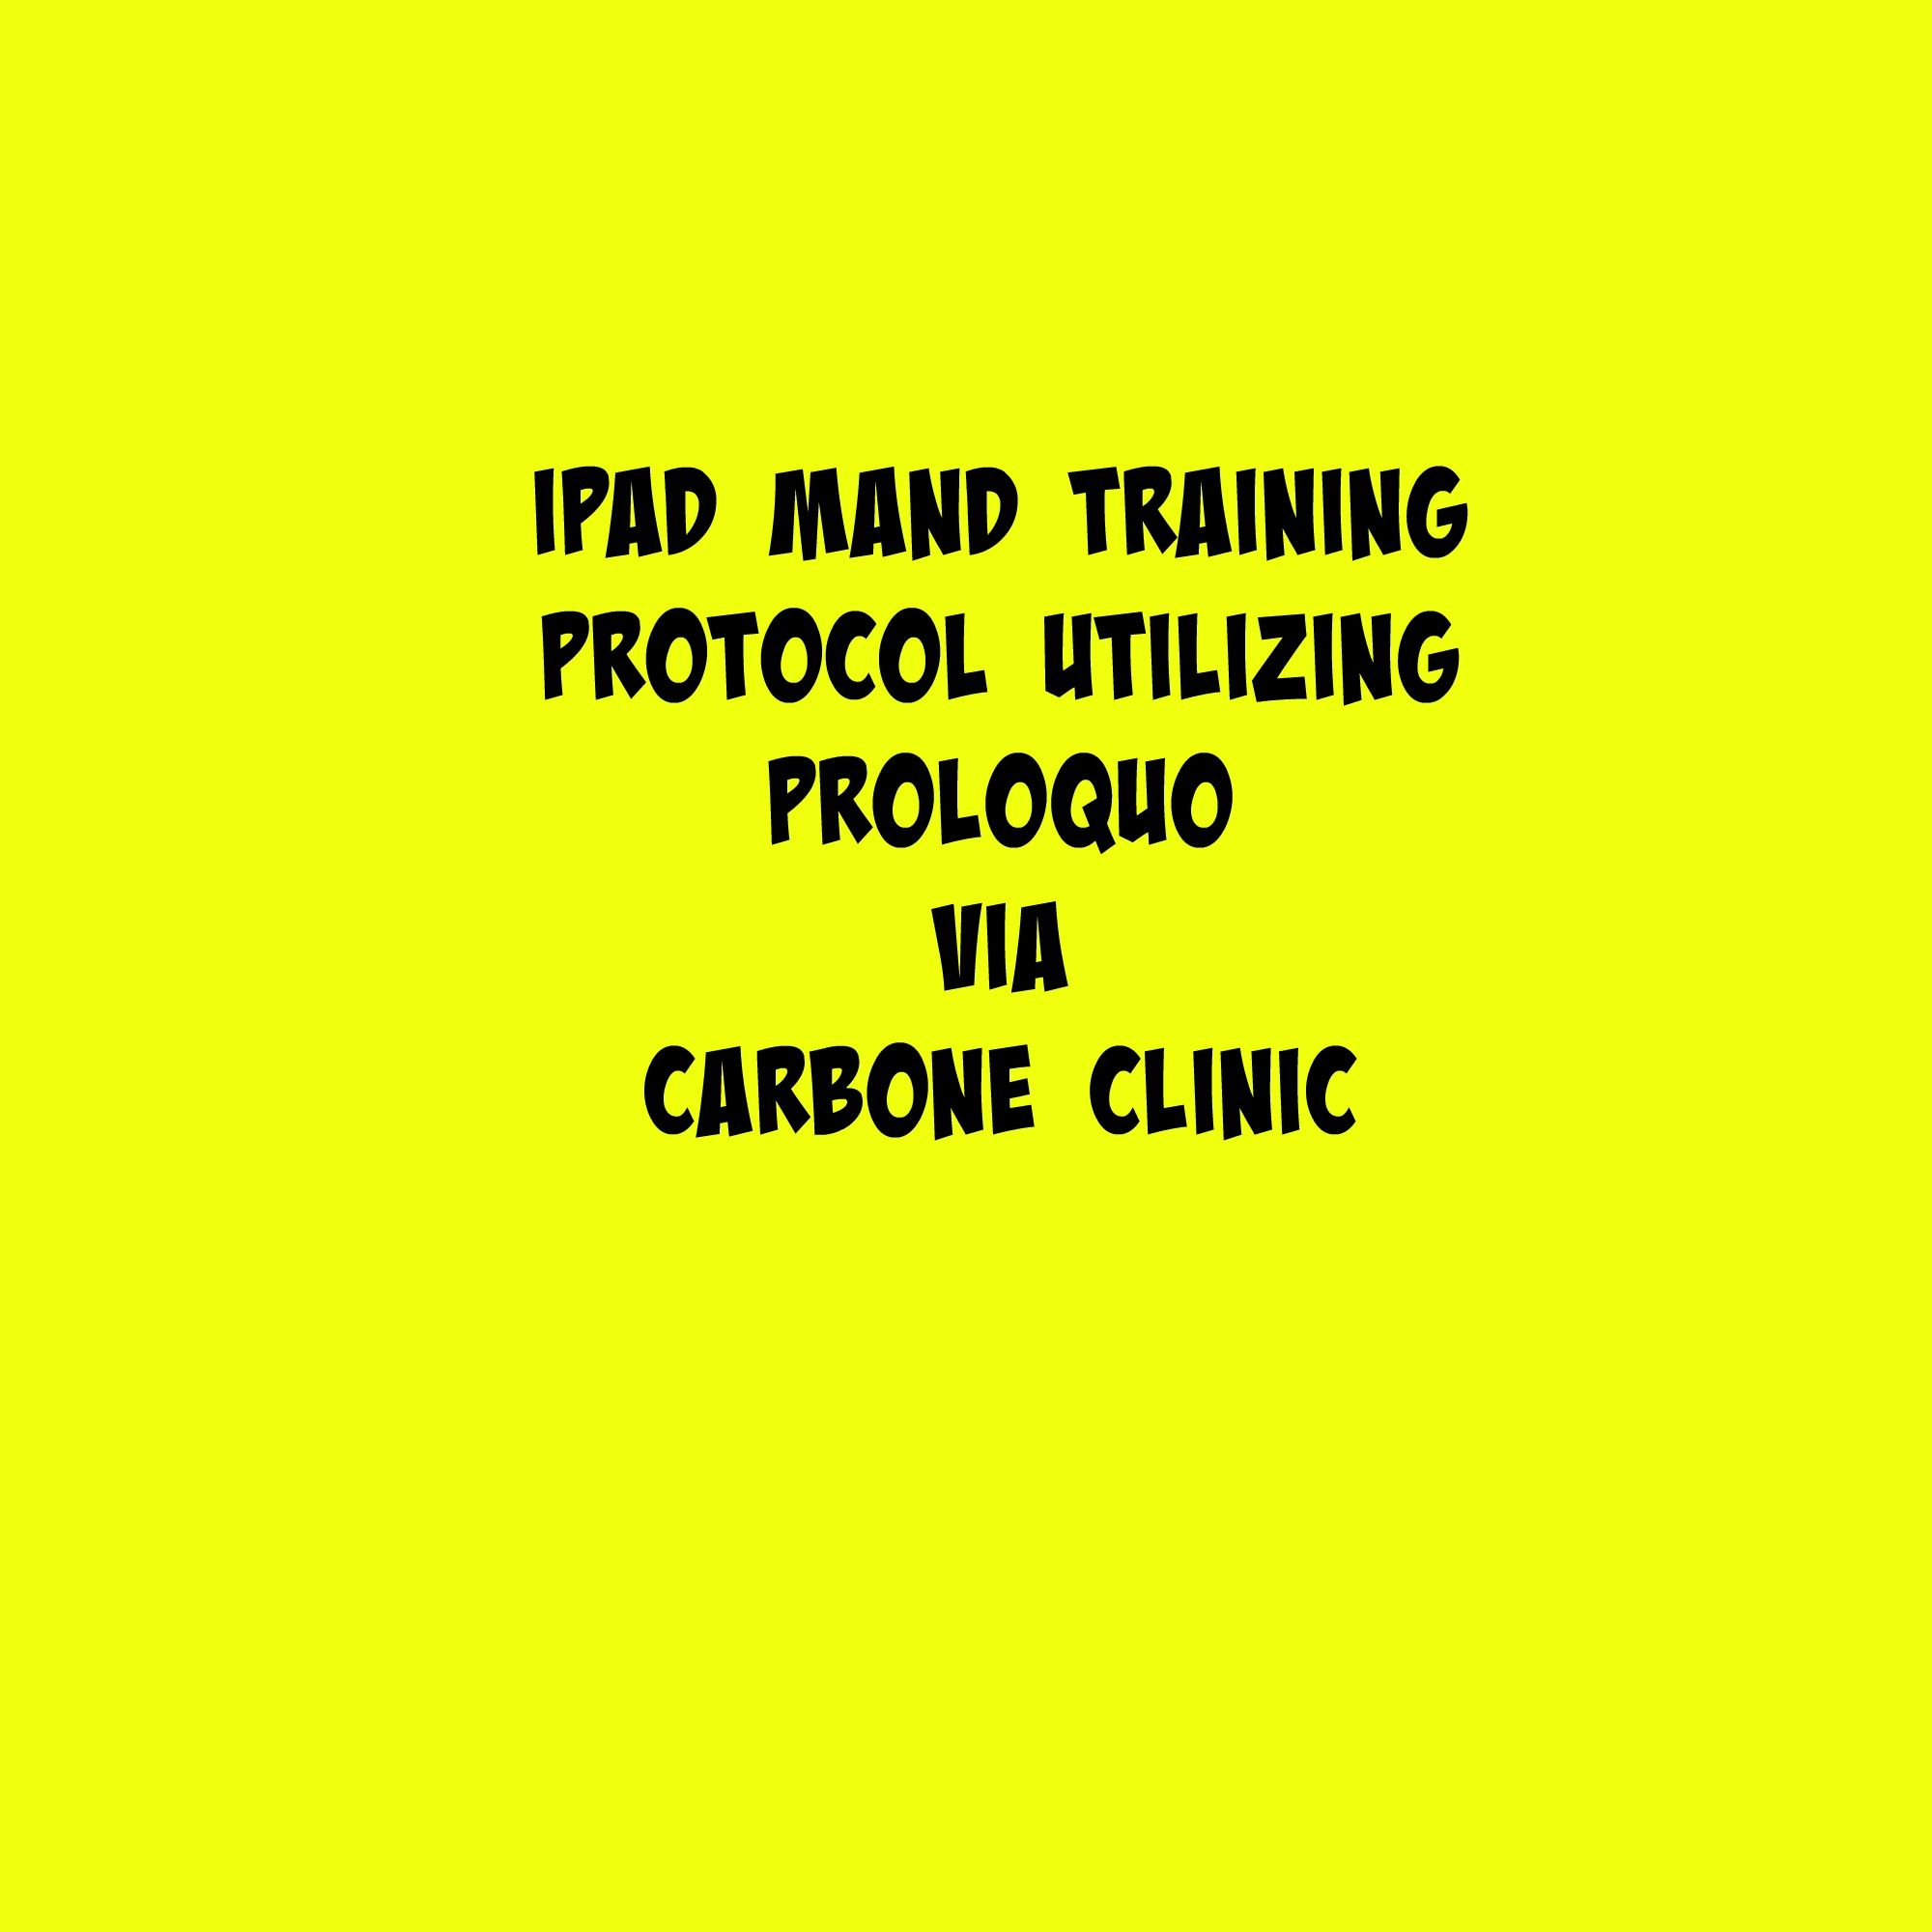 Ipad Mand Training Protocol Utilizing Proloquo Via Carbone